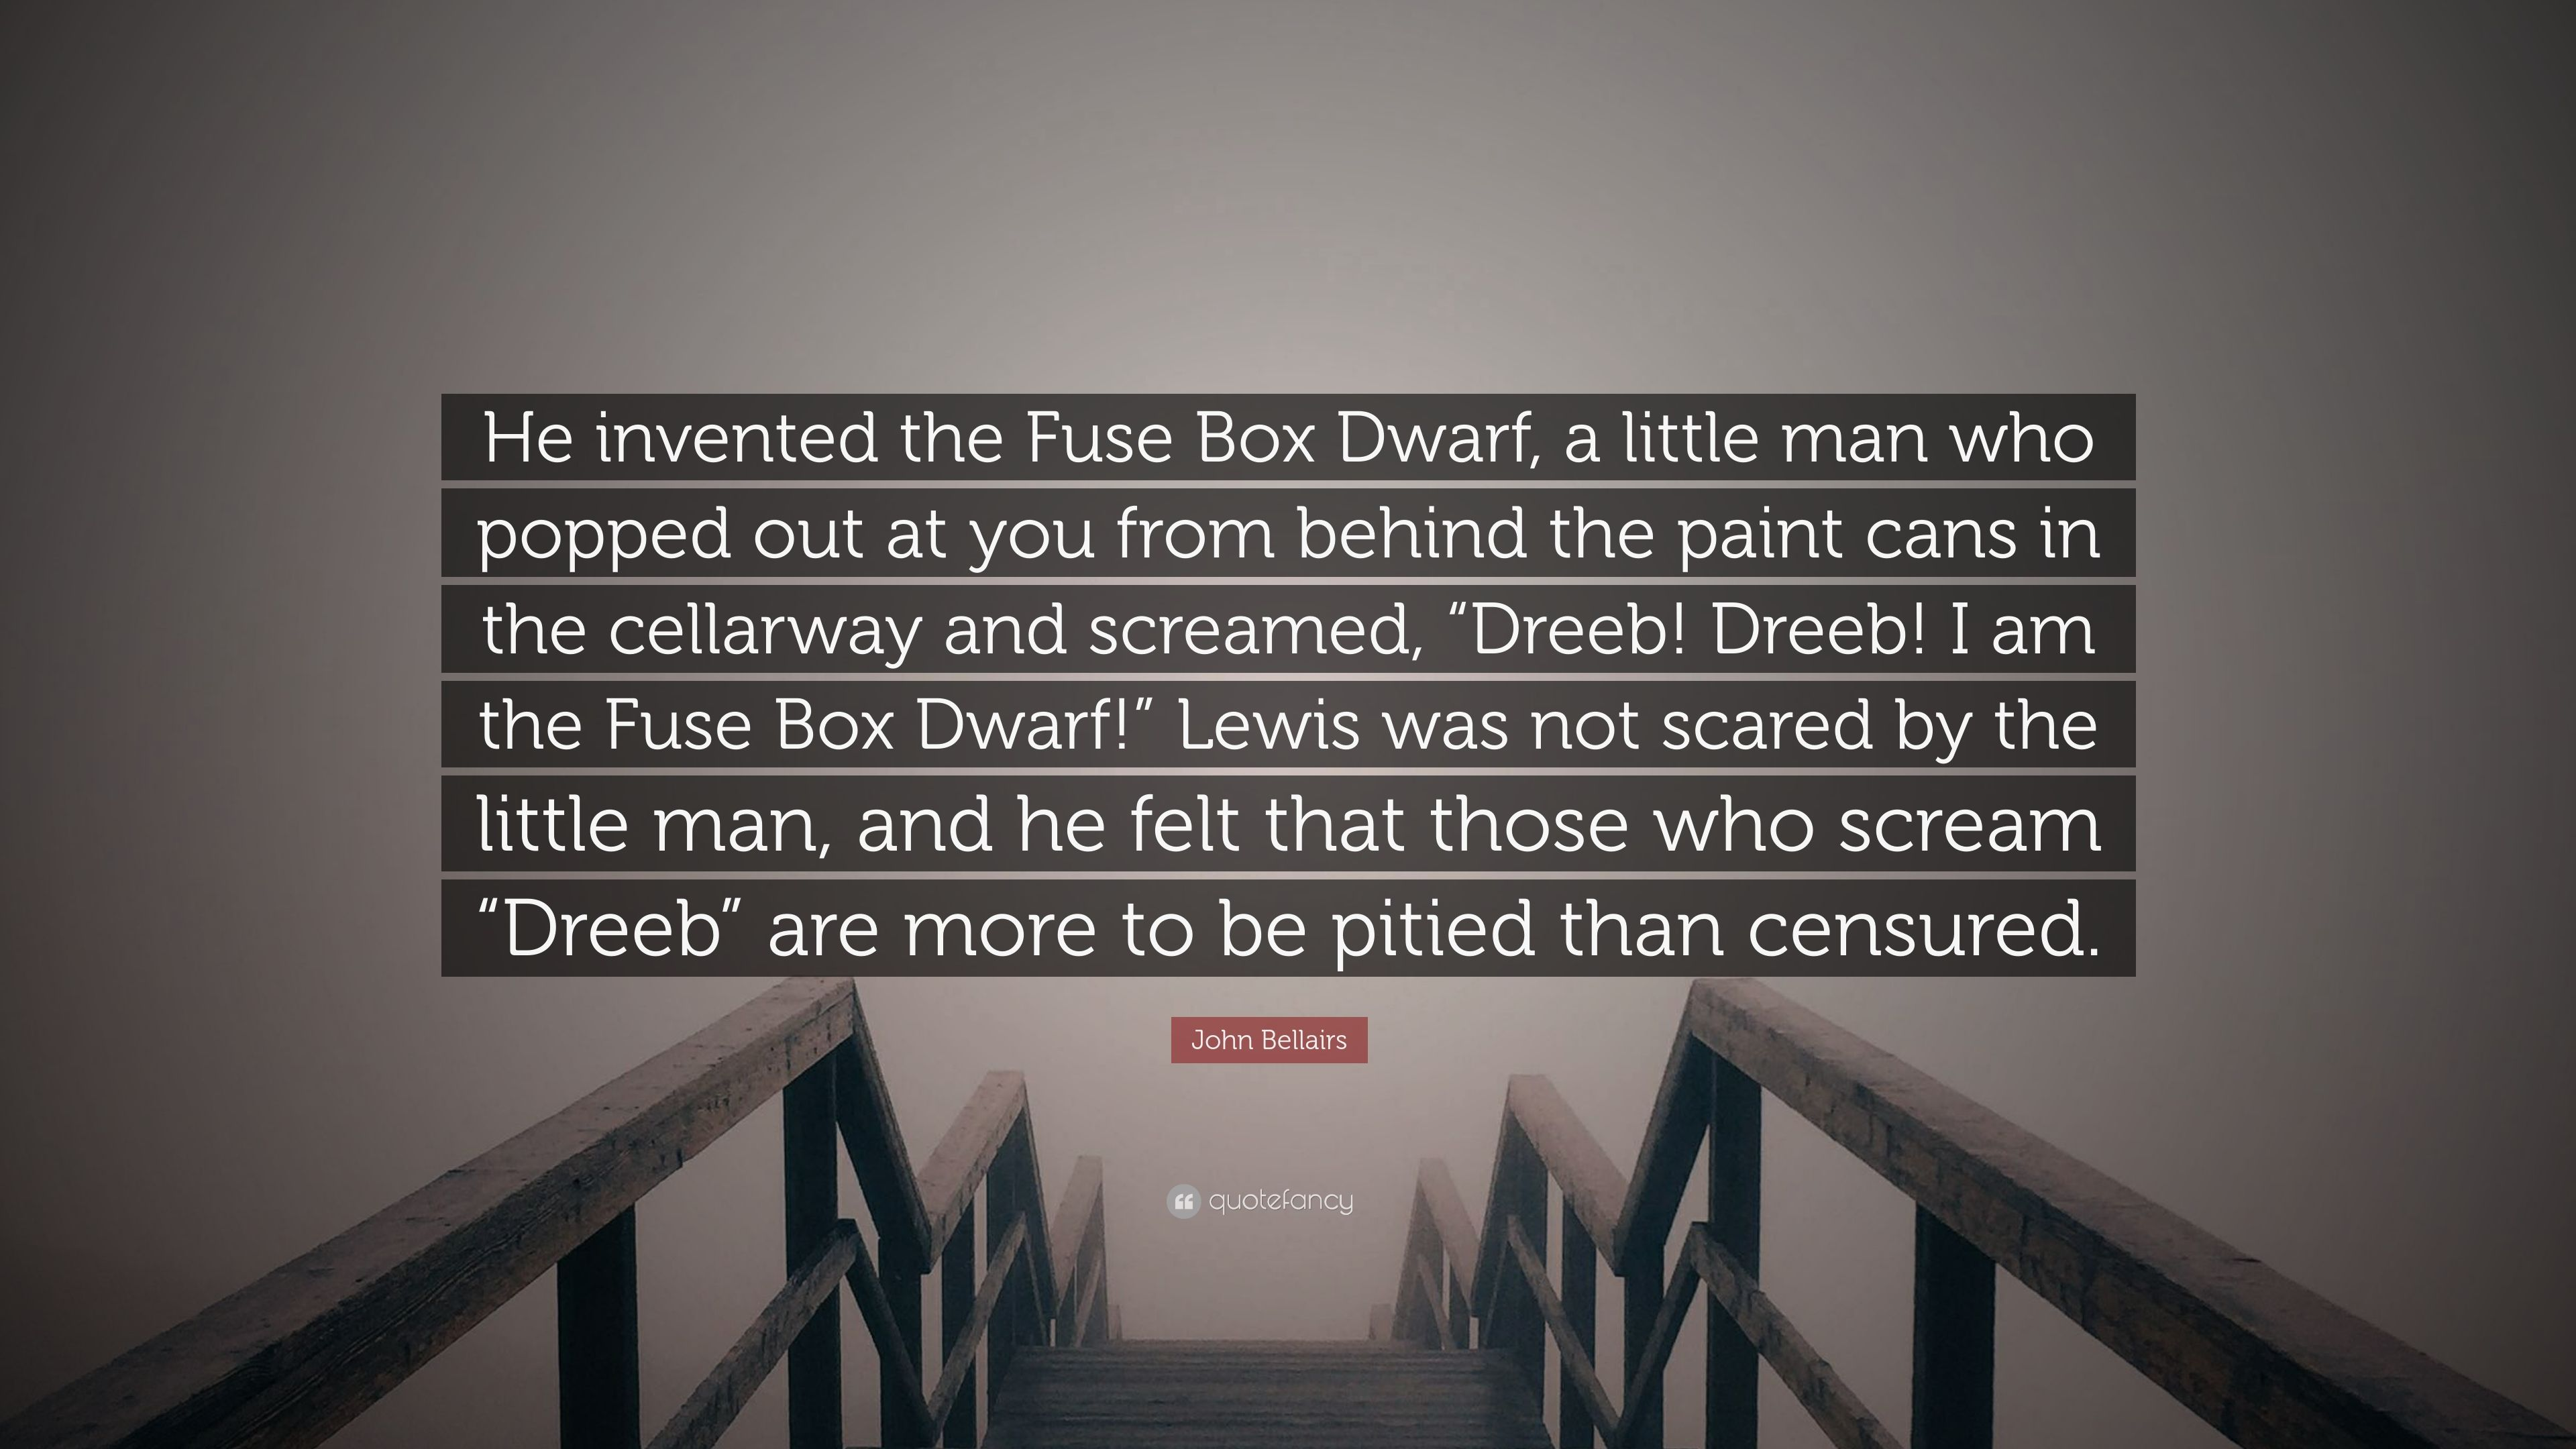 3297083 John Bellairs Quote He invented the Fuse Box Dwarf a little man john bellairs quote \u201che invented the fuse box dwarf, a little man  at soozxer.org